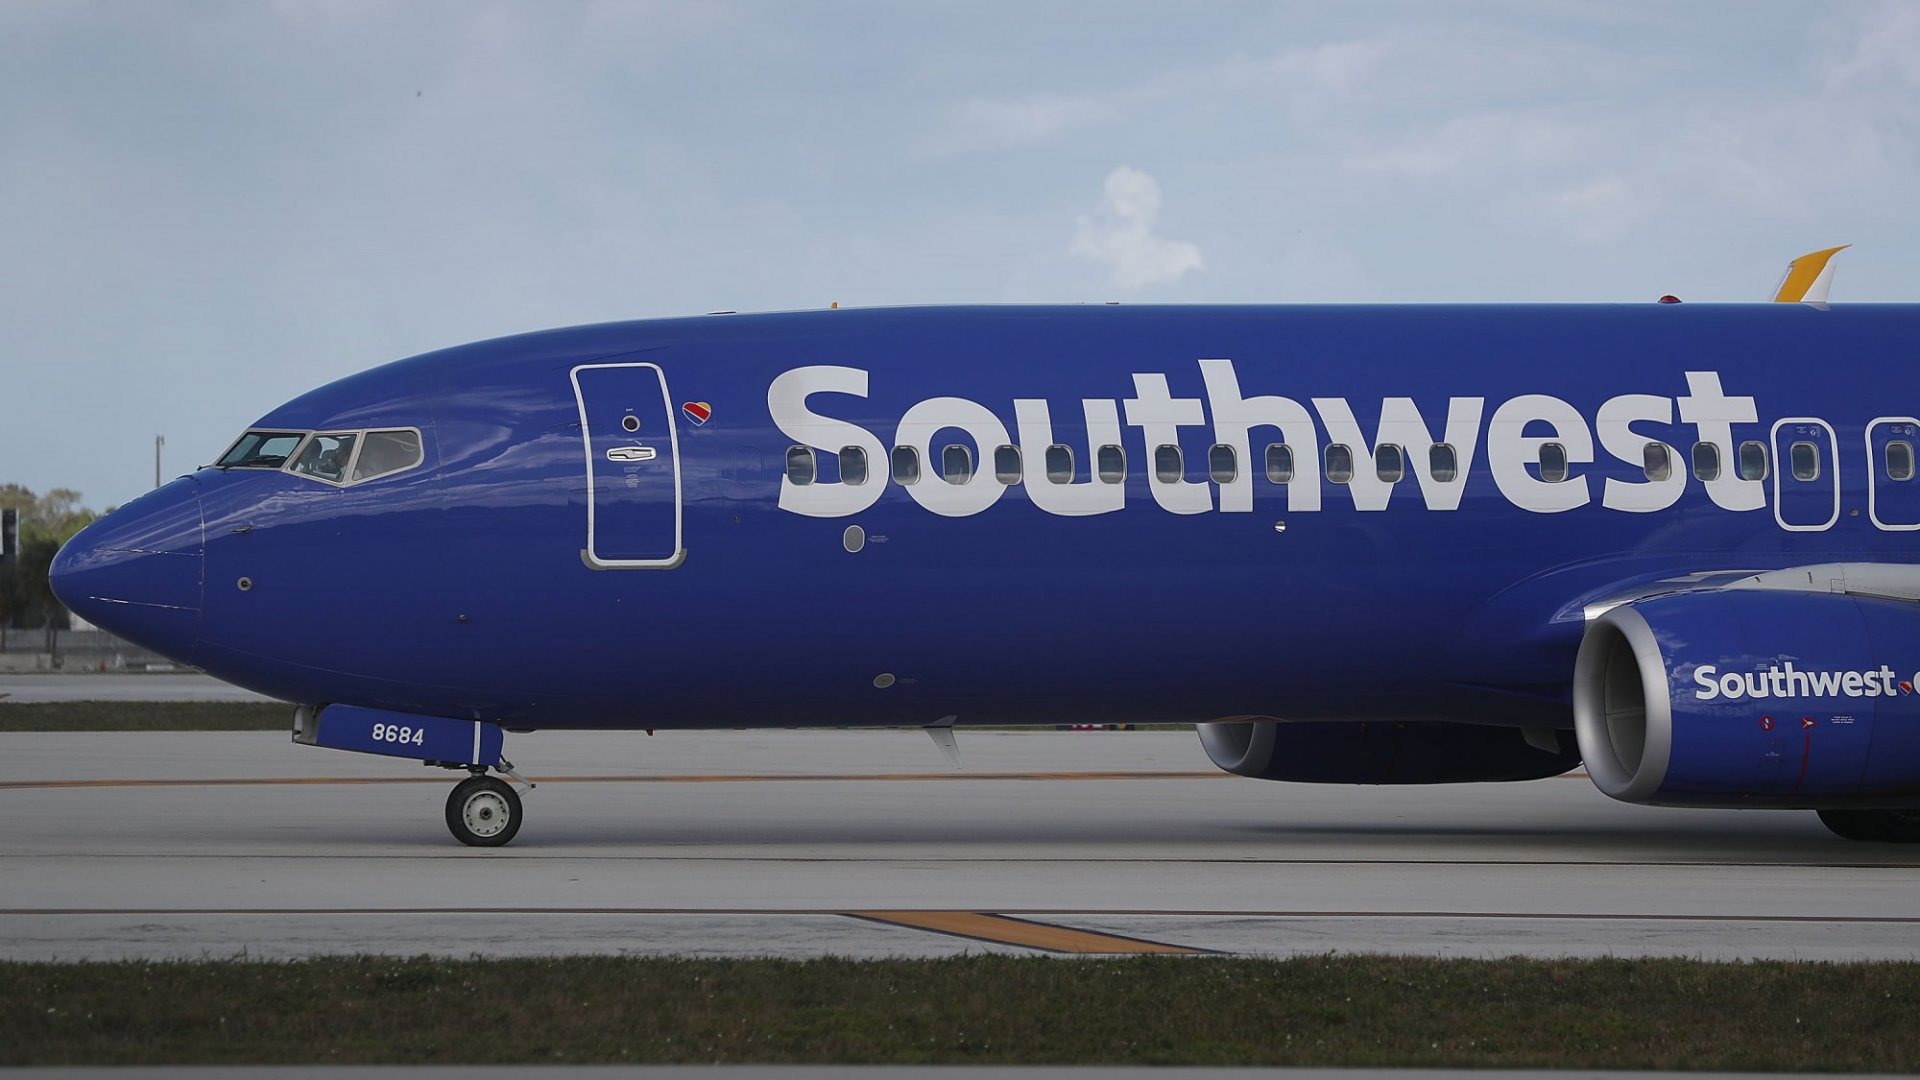 Southwest Airlines Customers Are Raging at the Airline. But Whose Fault Is It?